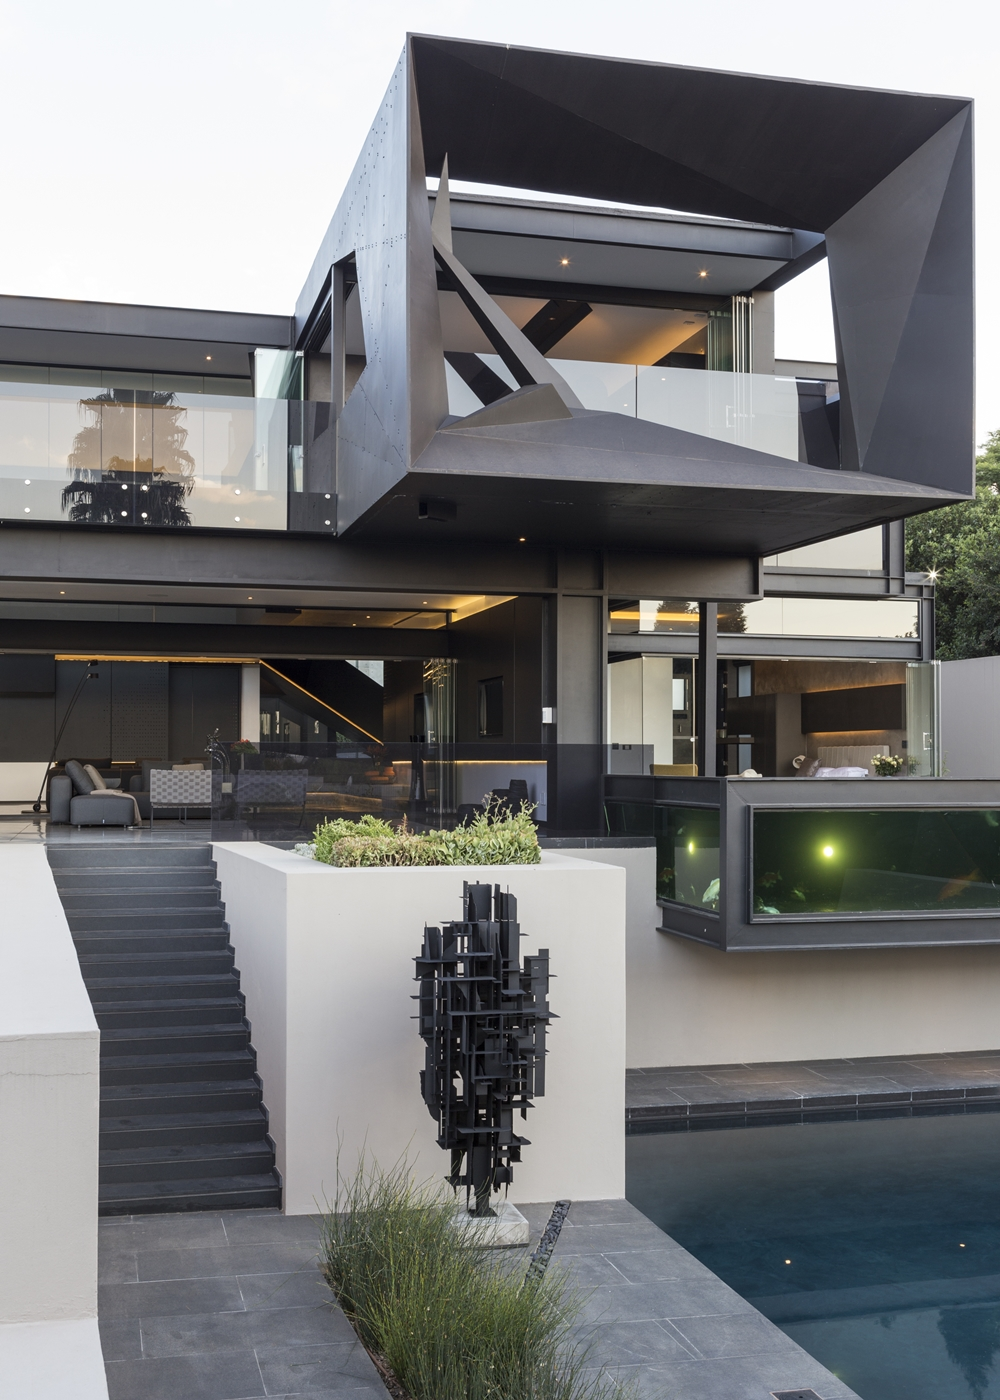 Best houses in the world amazing kloof road house for Best architect house designs